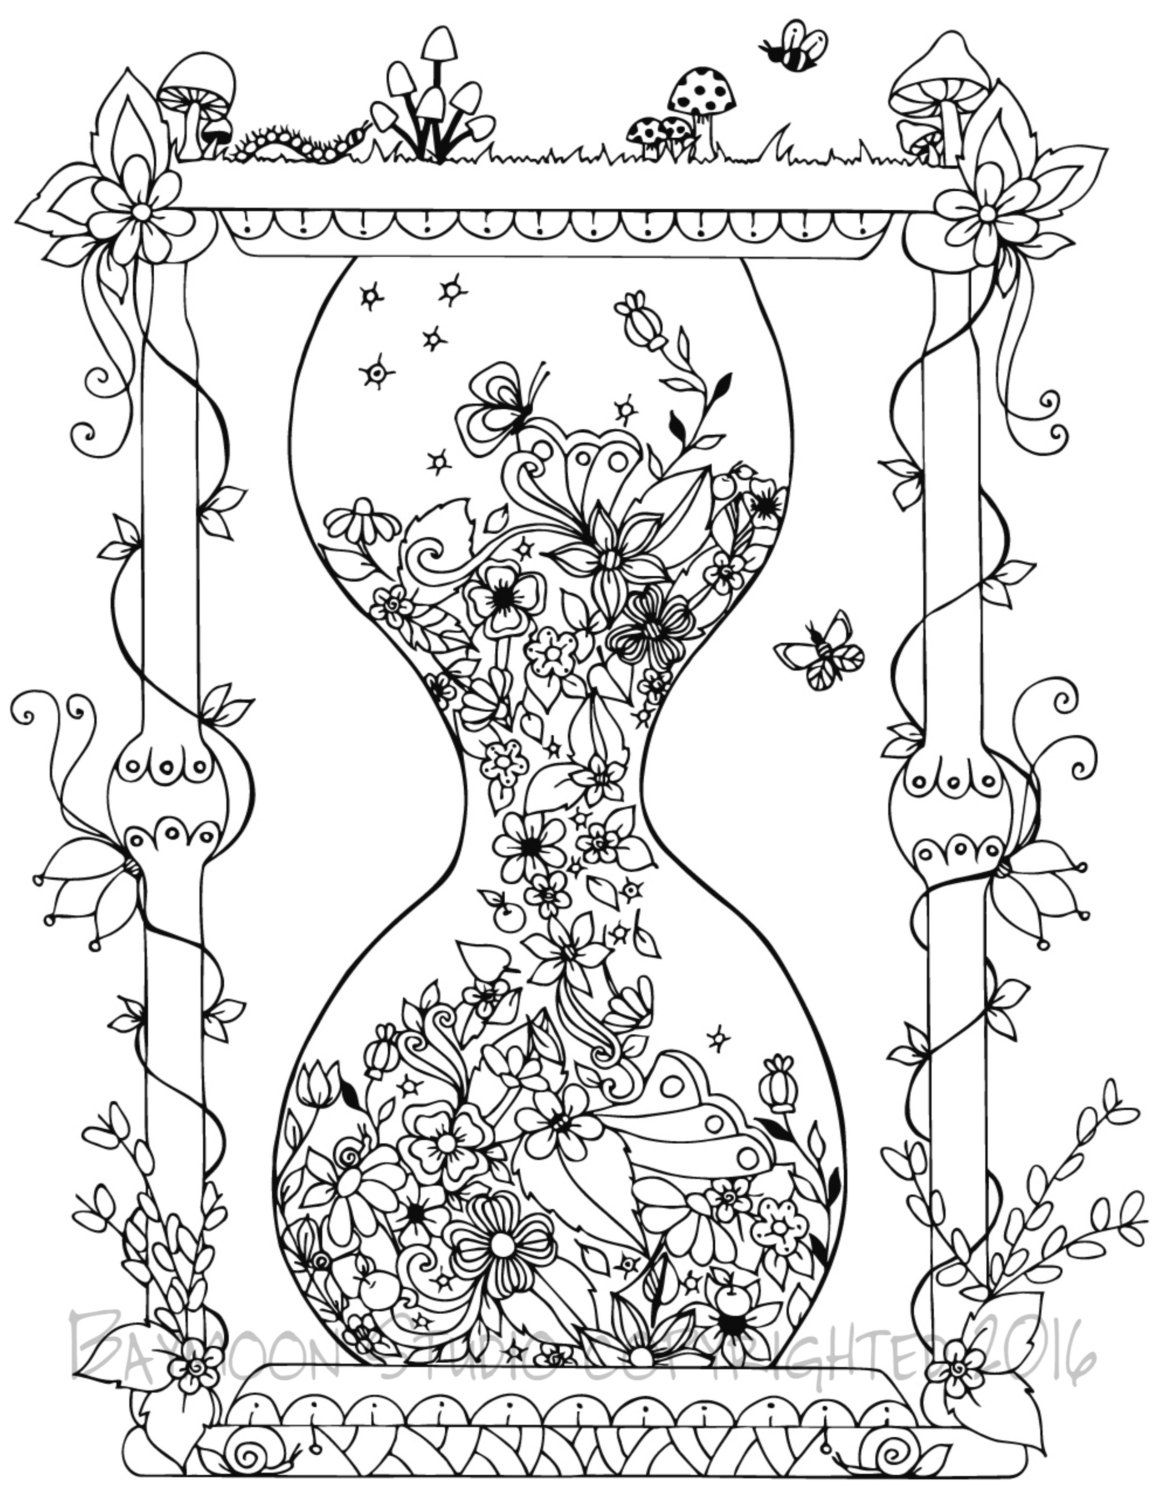 Pin By Robyn F On Printables Cool Coloring Pages Coloring Pages Free Coloring Pages